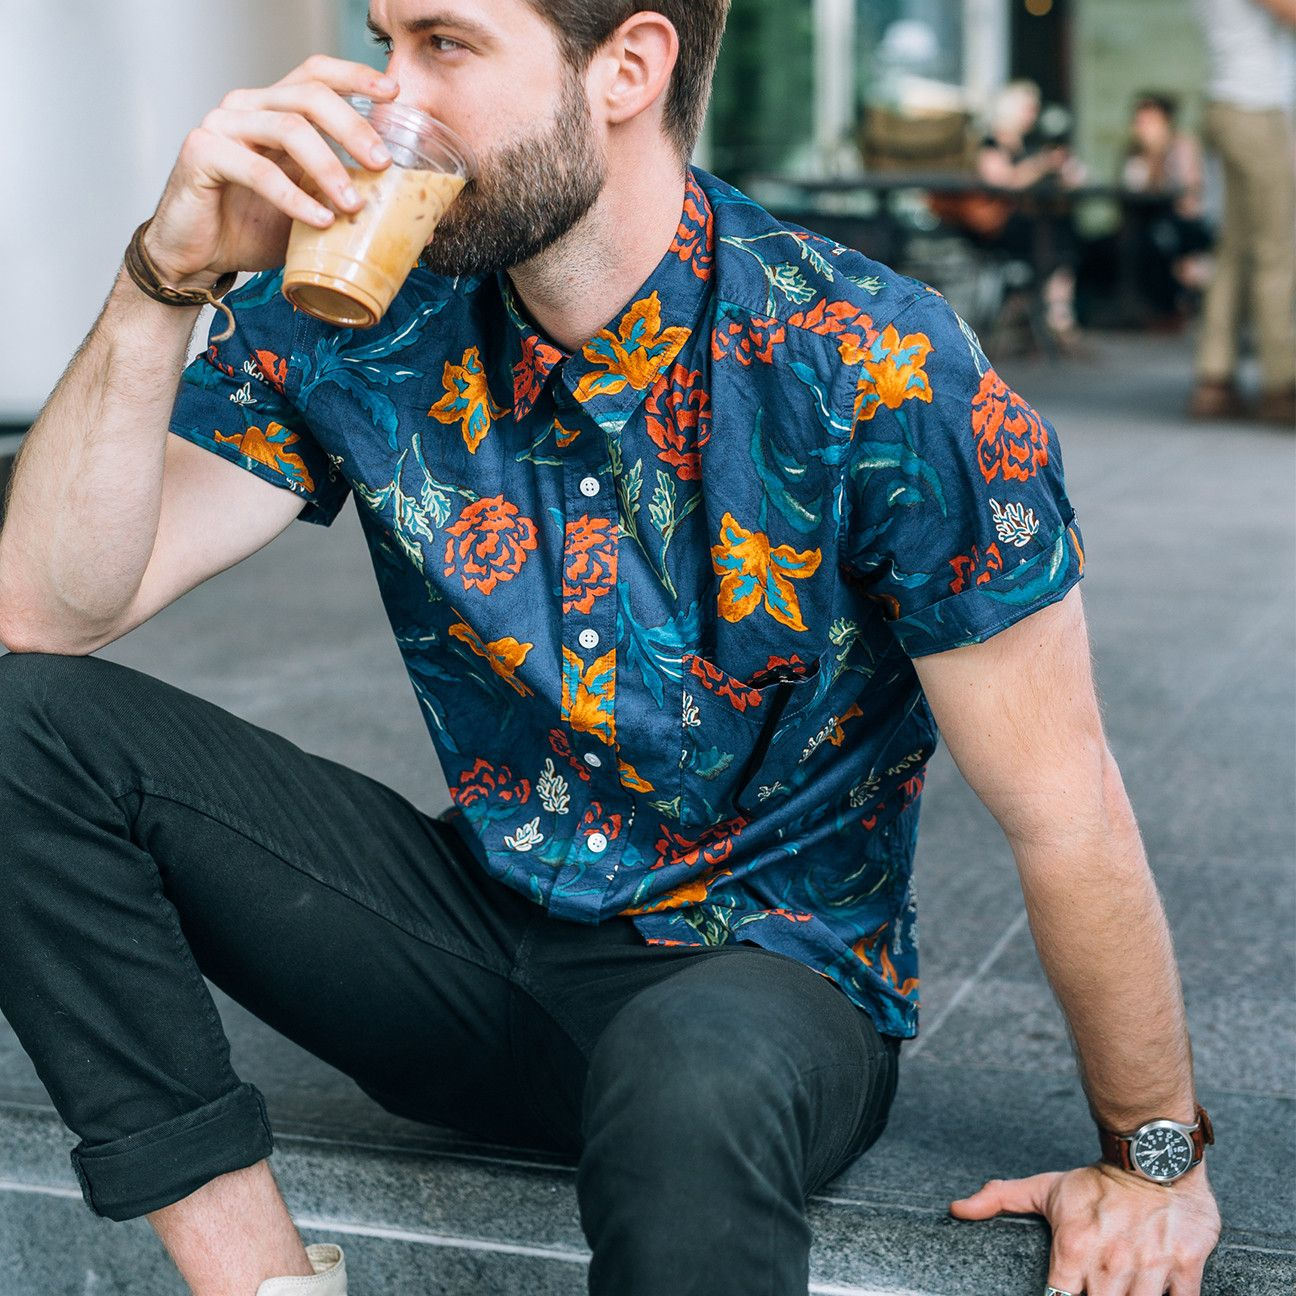 d0f194200 Floral is the new plaid.  floralformen at weathered coalition.  Corridor Lily Floral Shirt men s printed shirt